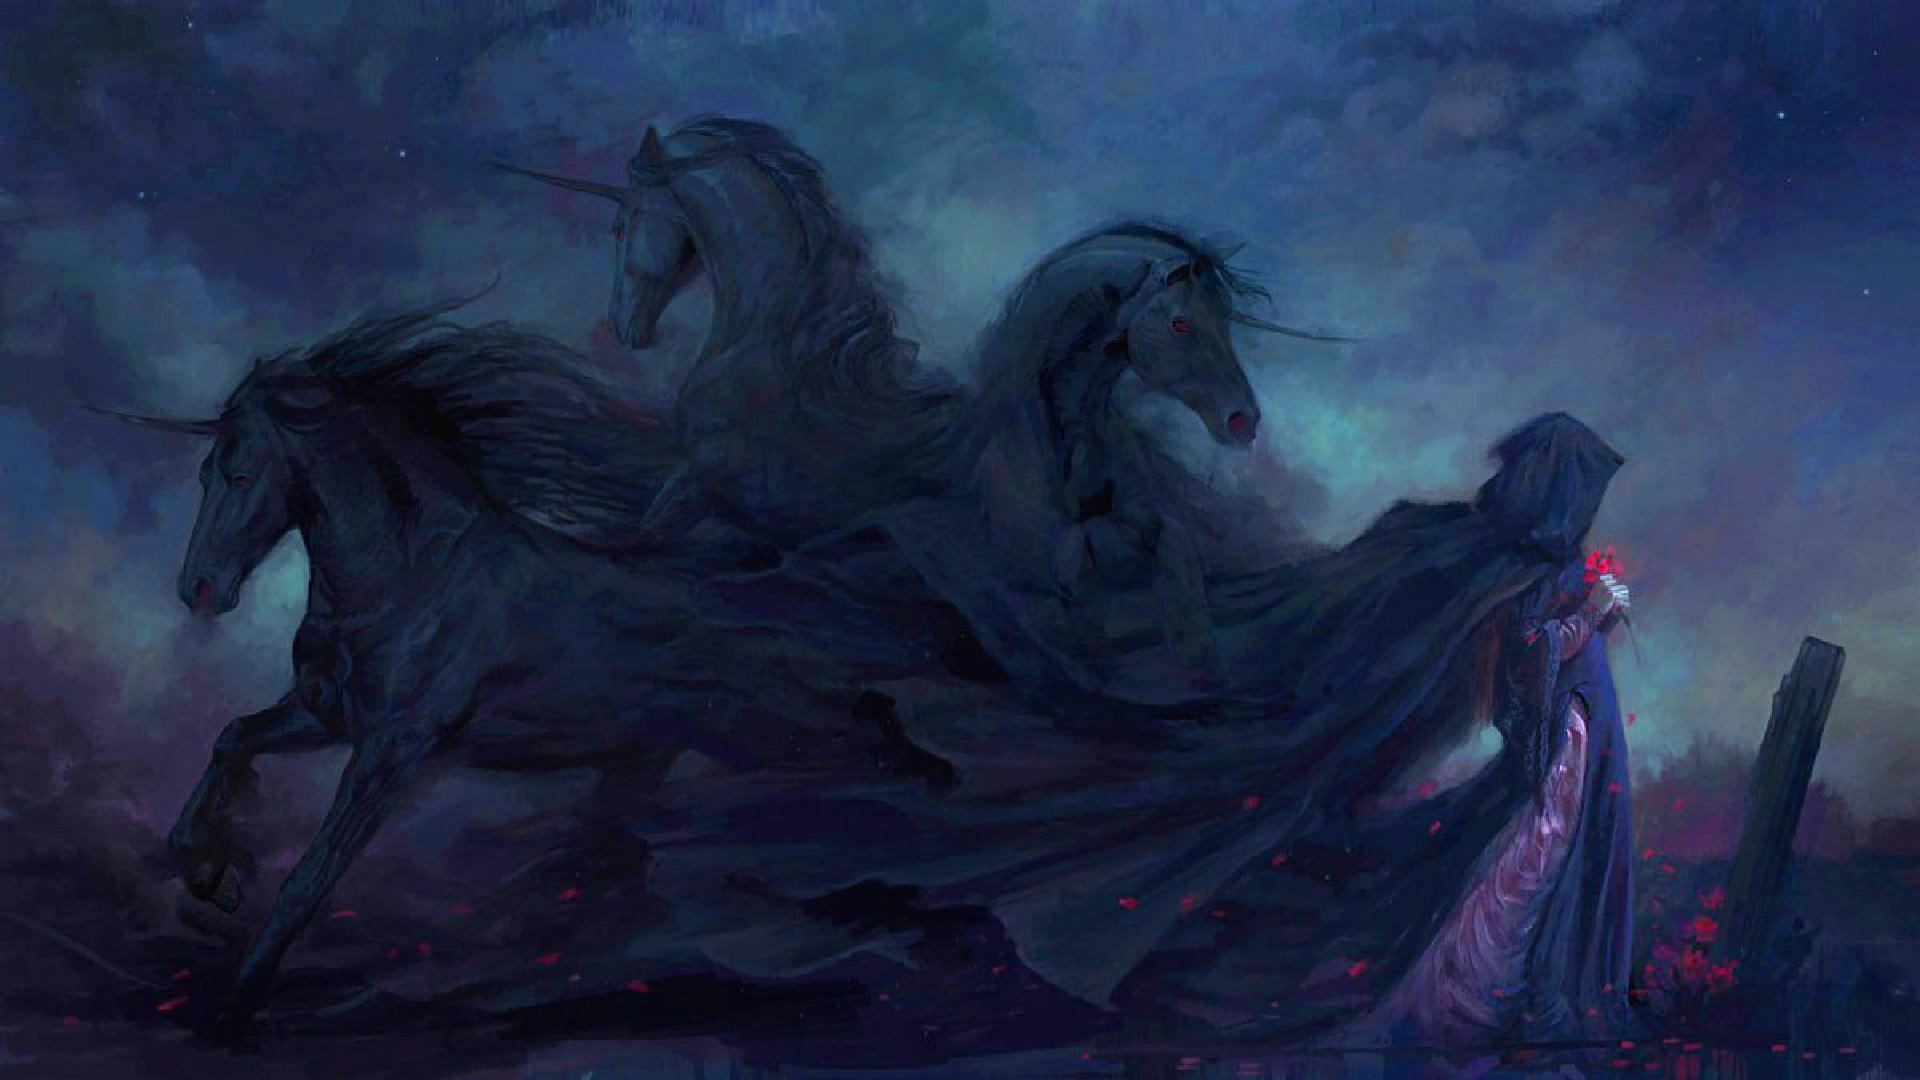 Dark - Artistic  Dark Unicorn Sadness Woman Gothic Wallpaper